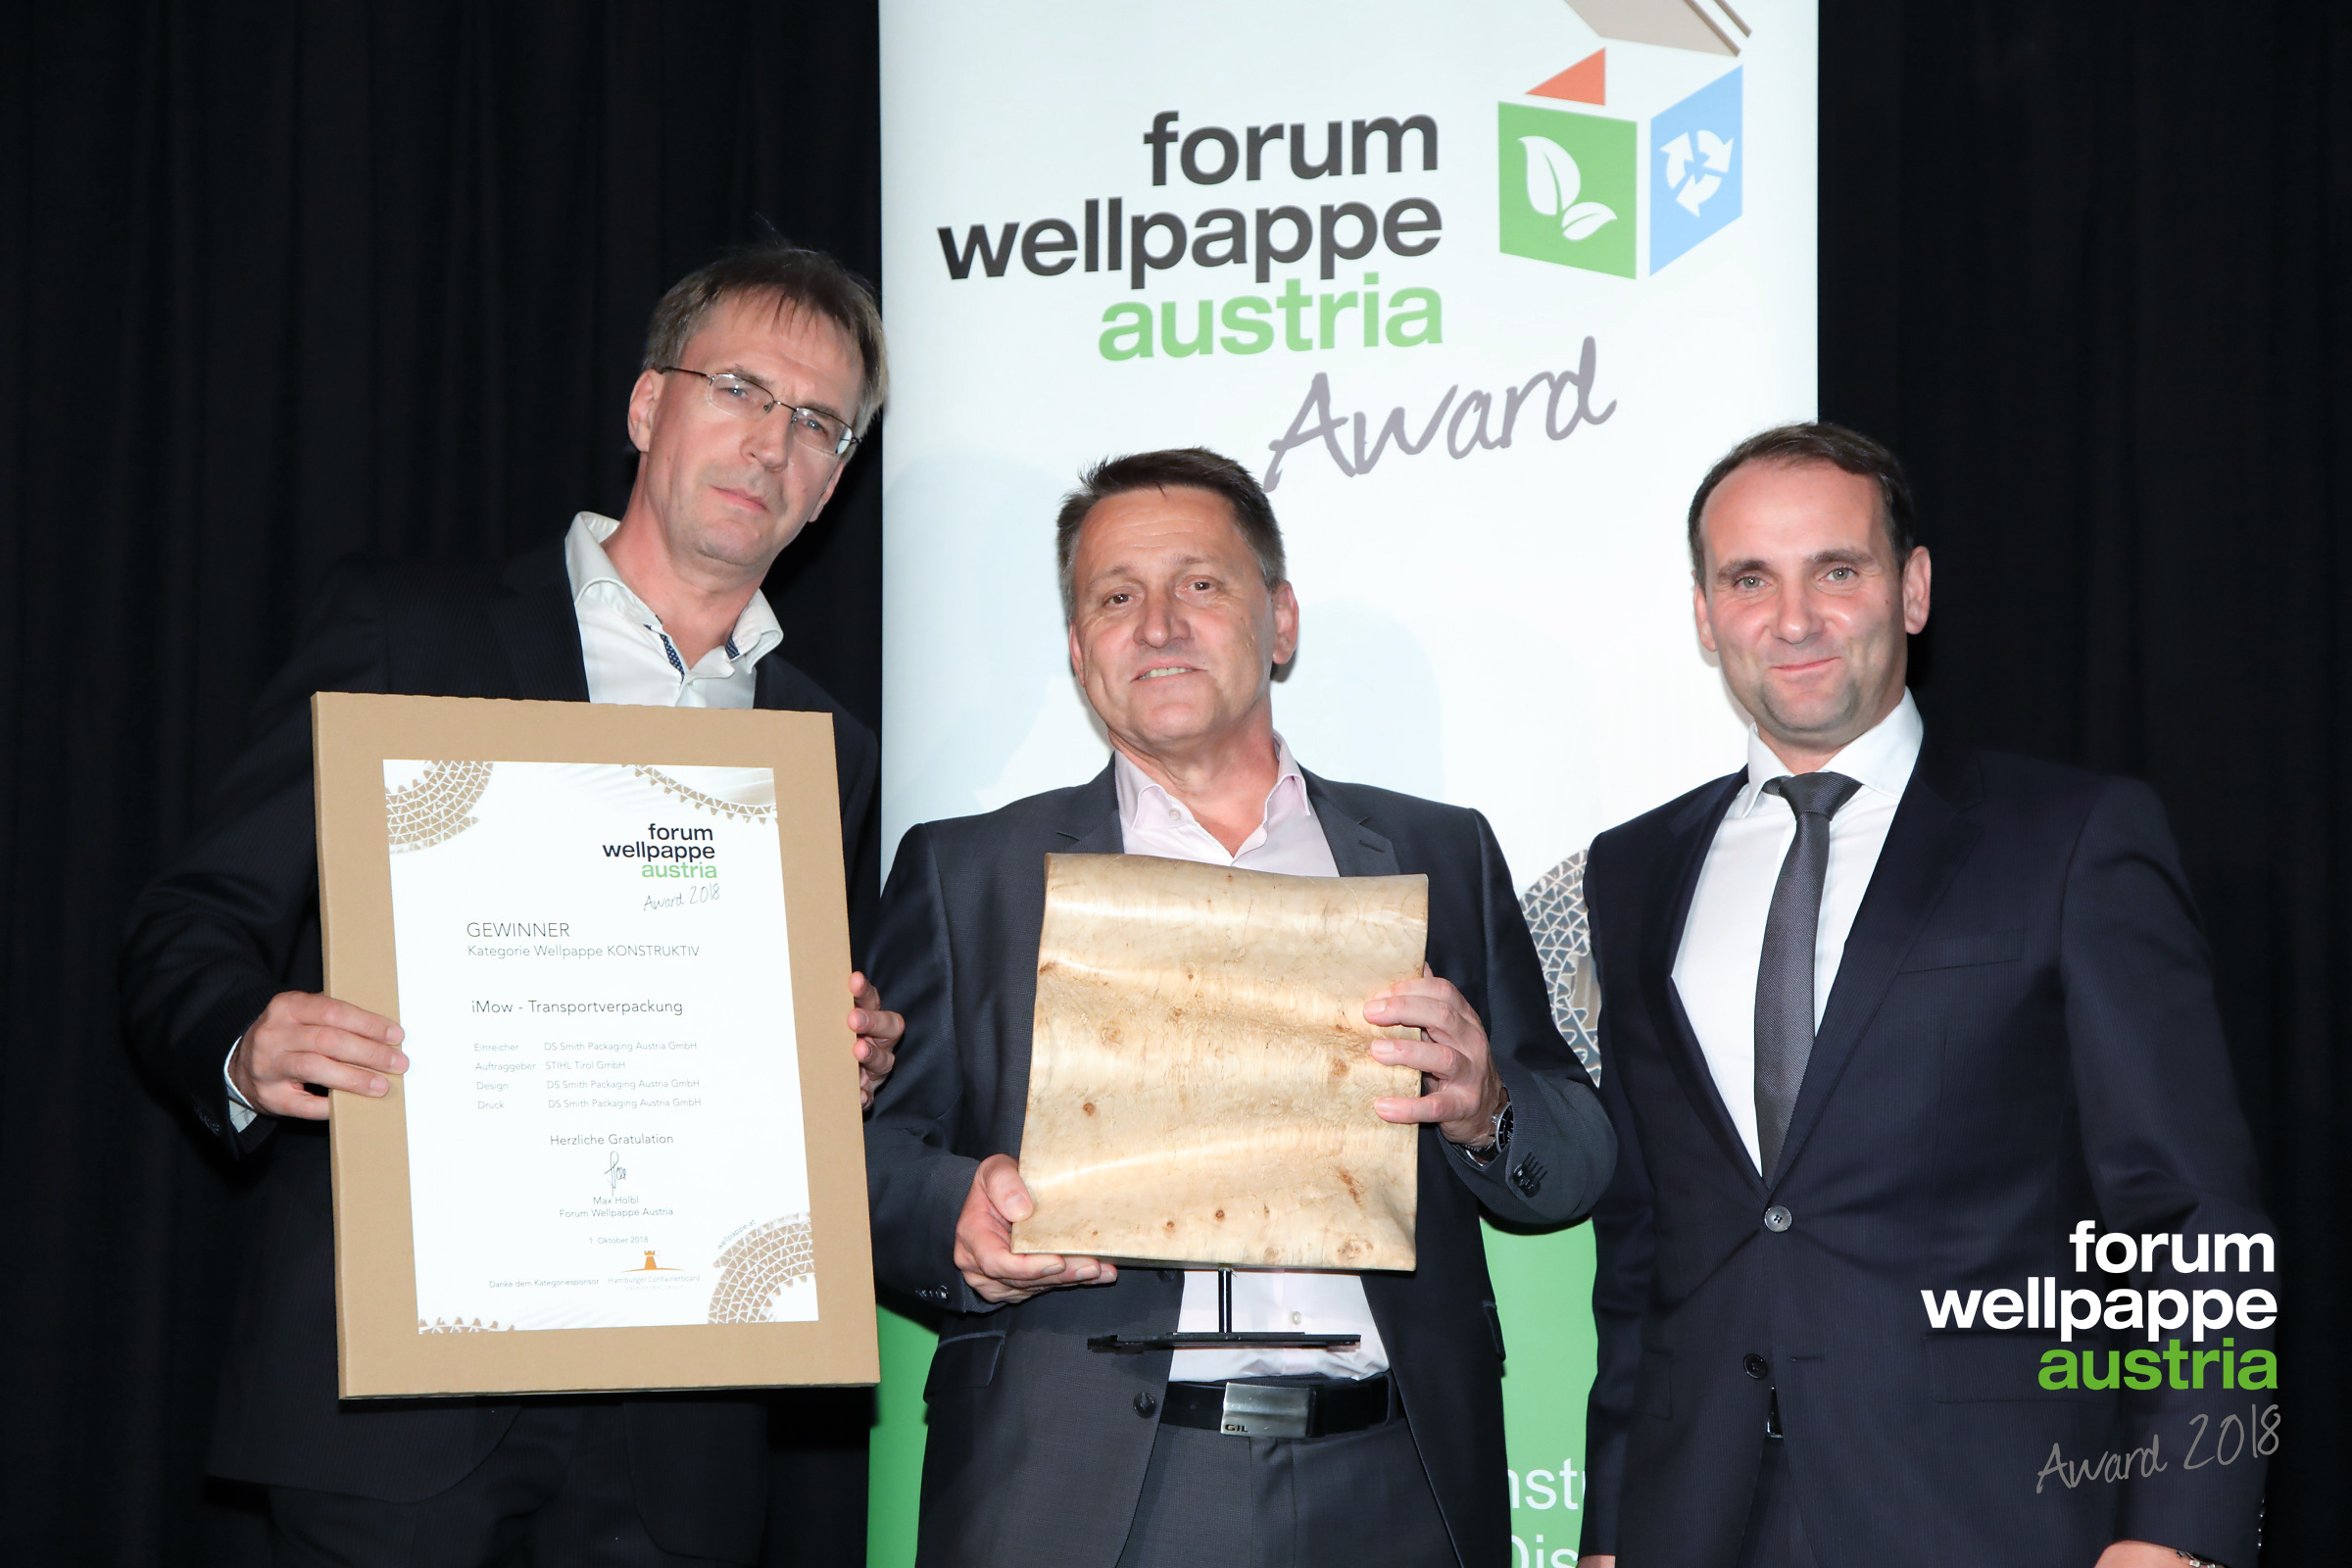 WELLPAPPE AWARD 2018 D. Glawischnig DS Smith, E. Steinwender DS Smith, P. Kodel Hamburger © com_unit/L. SCHEDL